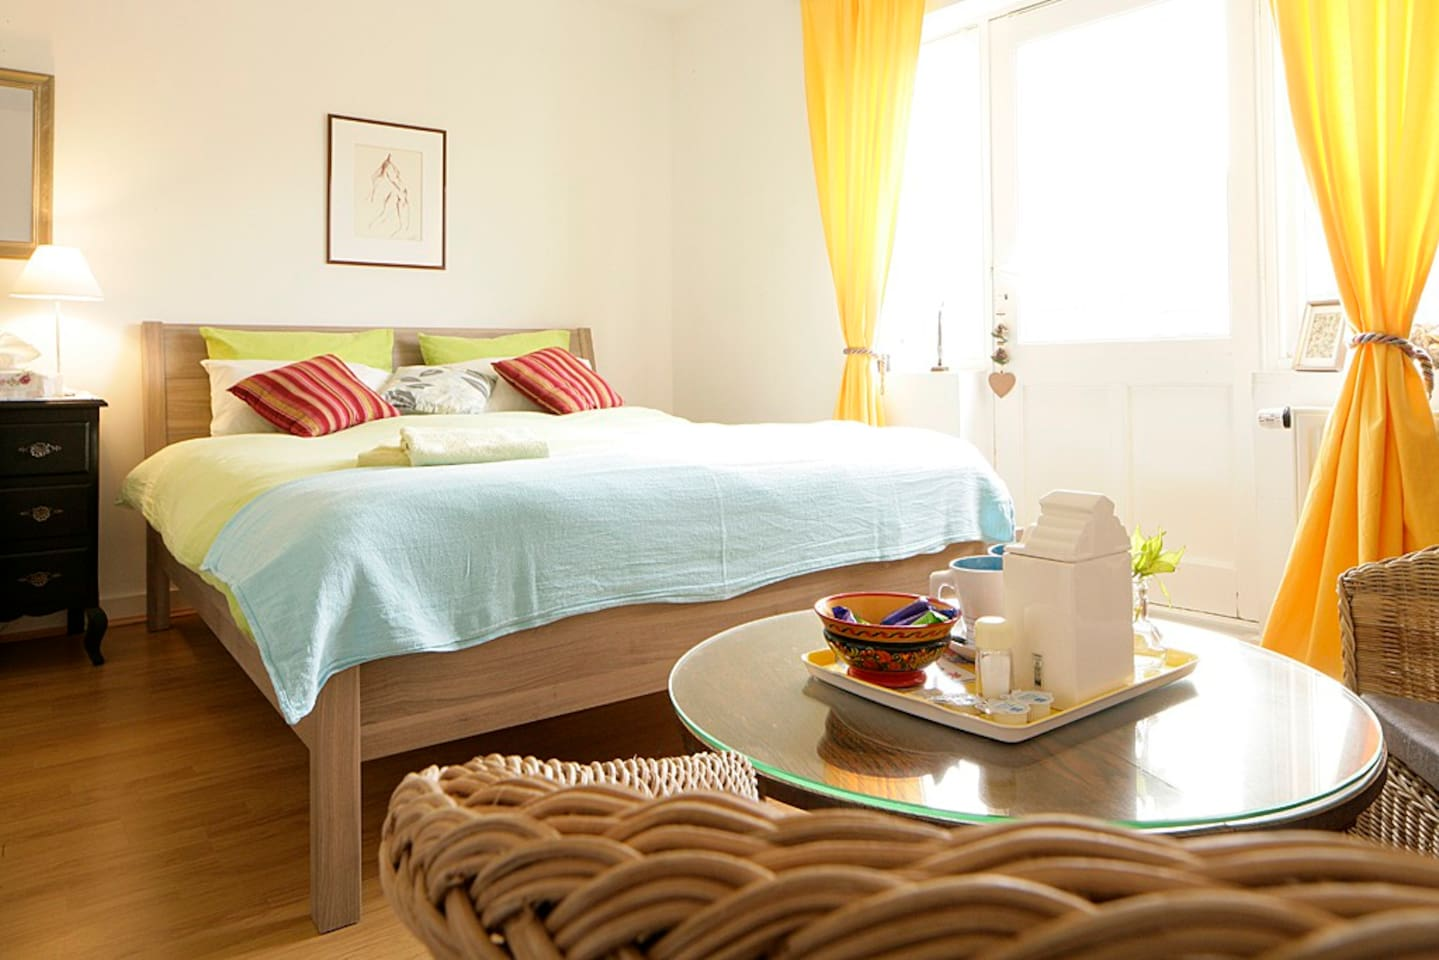 Your room and a spacious bed :)